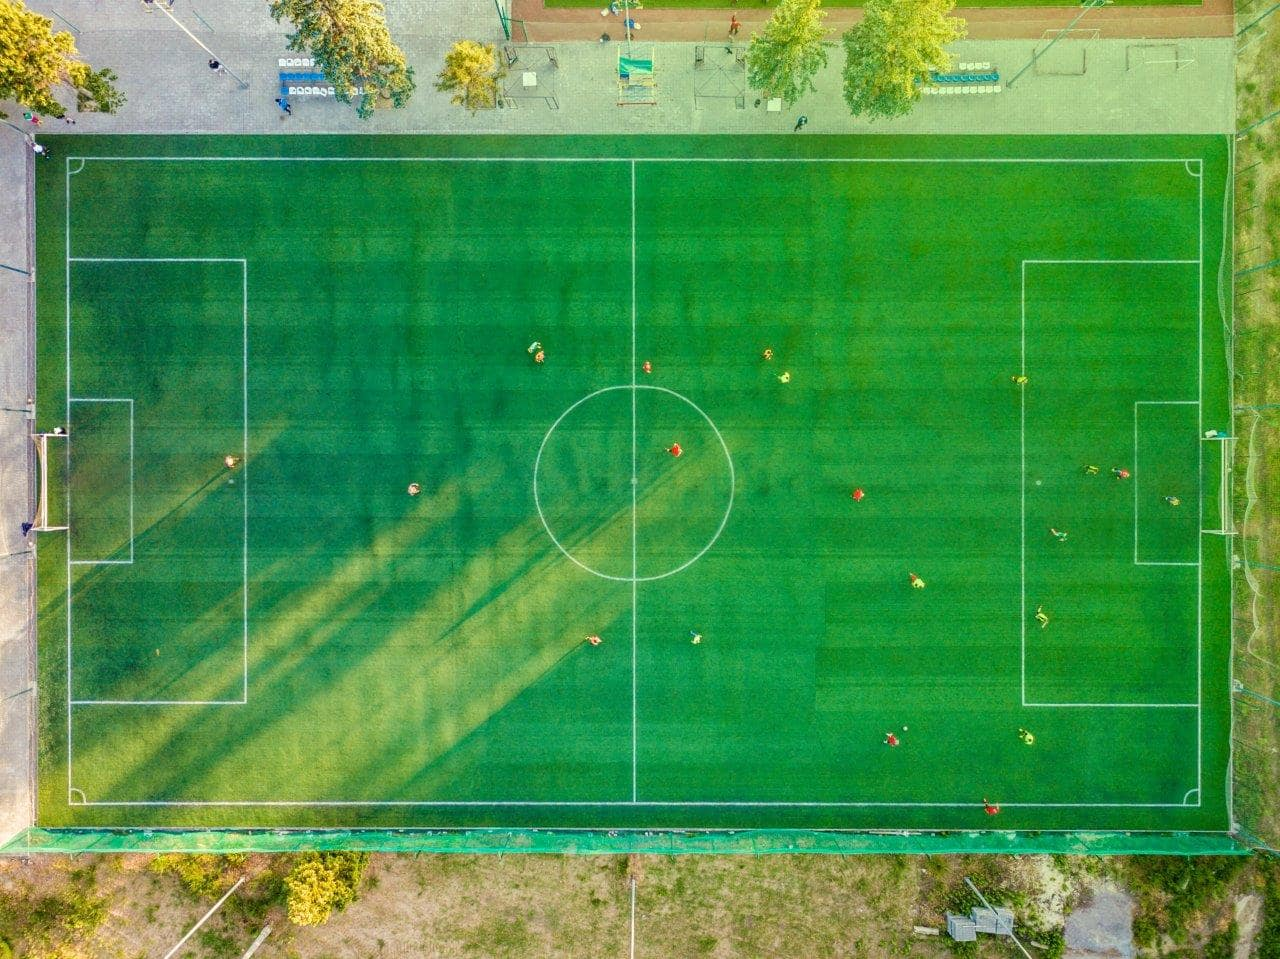 Green football pitch with footballers